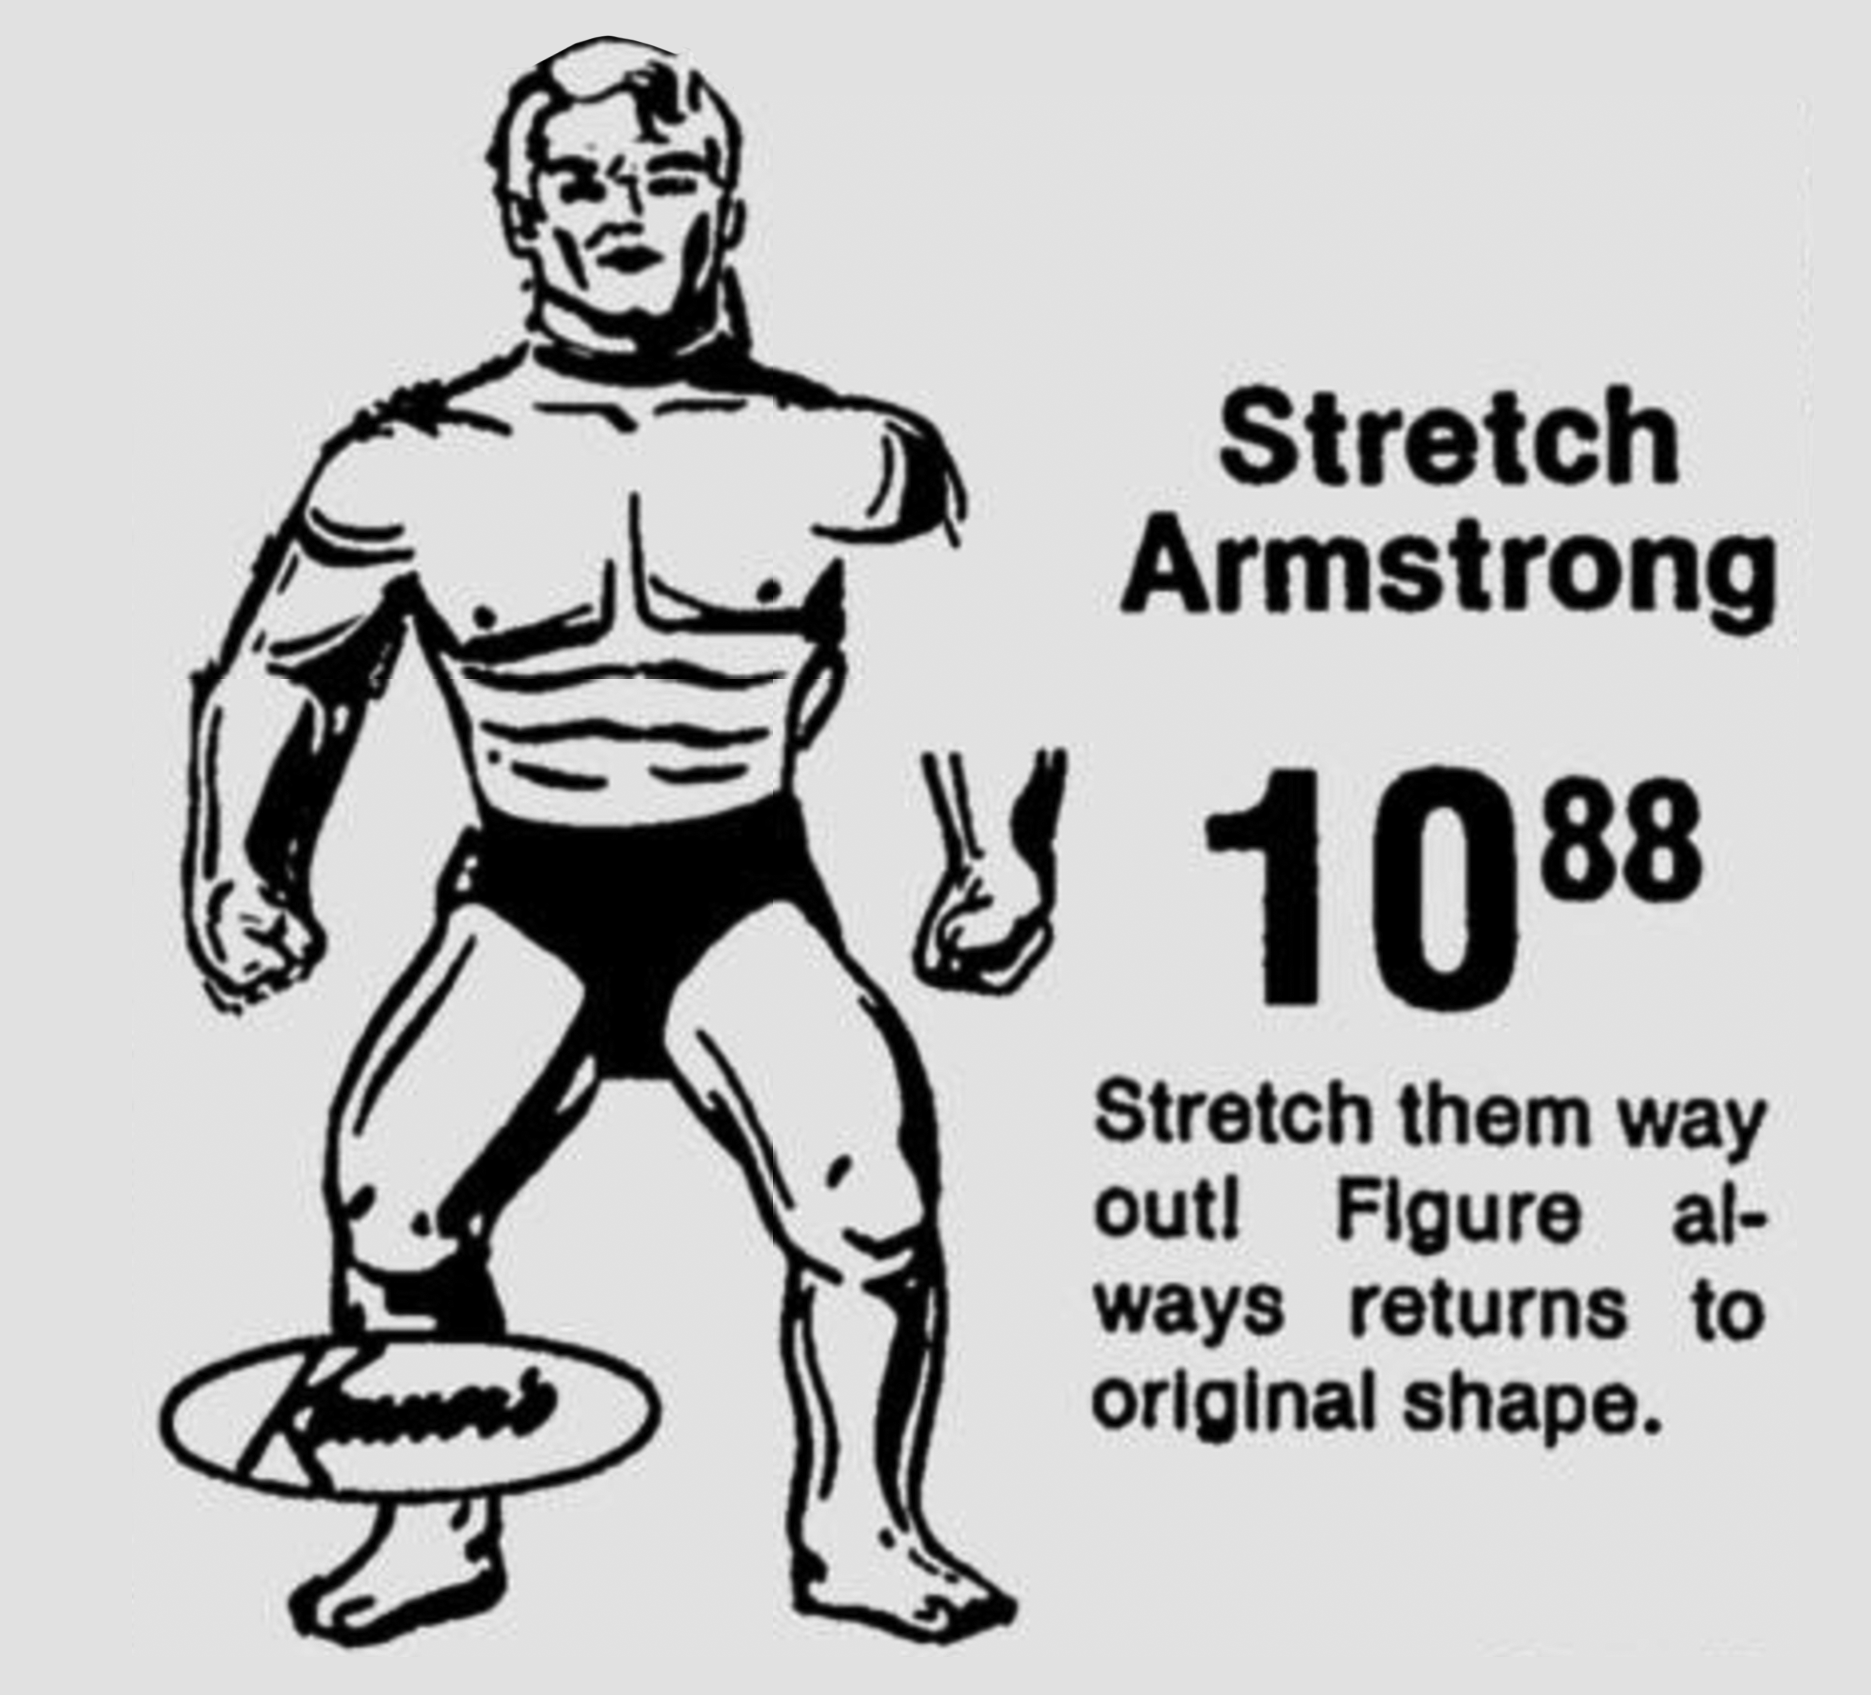 stretch armstrong reviews